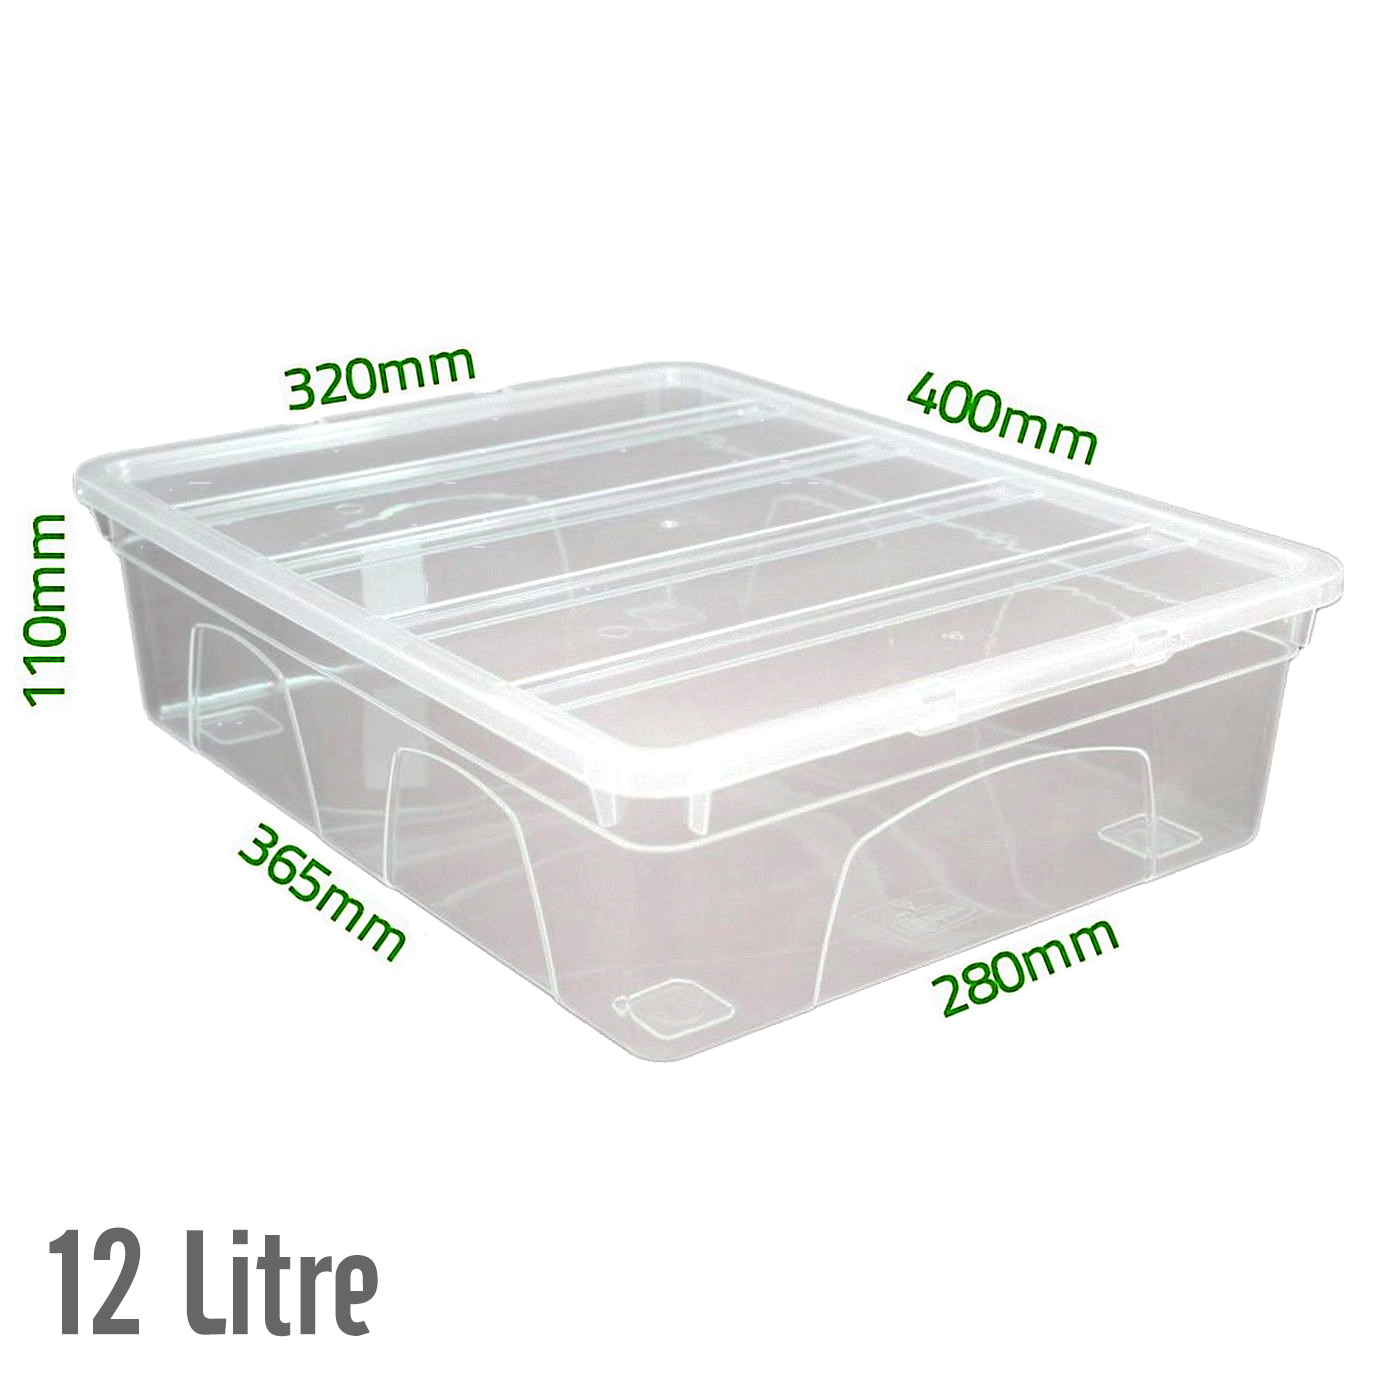 Acrylic Boxes With Lids Uk : Ltr underbed clear plastic storage boxes tubs with